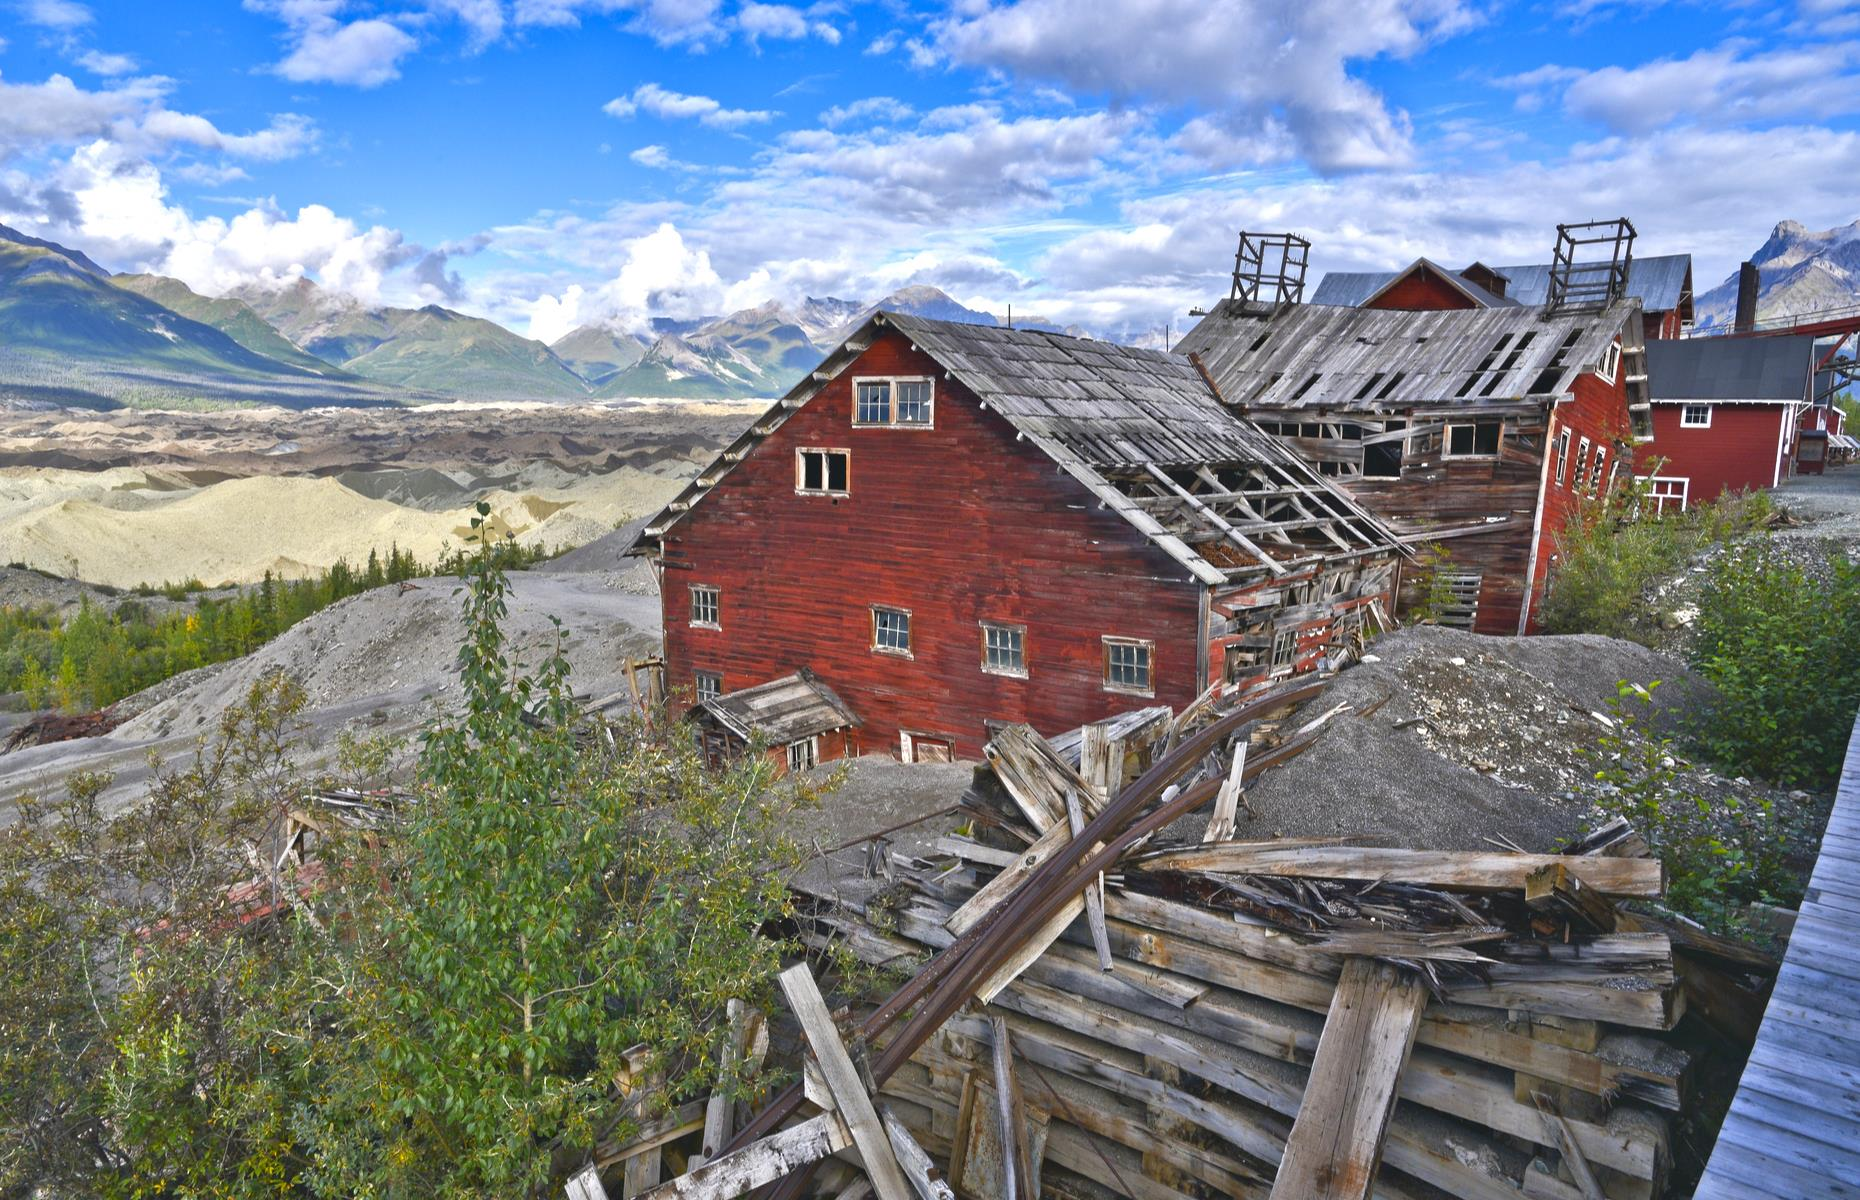 Slide 3 of 52: Protected today as a National Historic Landmark District, and within Wrangell-St Elias National Park, Kennecott (also Kennicott) was once a thriving copper-mining camp. But the site's existence was short-lived. Established in the early 1900s, the town was all but abandoned by 1938, as the area's copper reserves were exhausted, and the miners moved on. The site's deserted rust-red buildings and mountain views remain for visitors to explore, and interpretative rangers are currently available by phone.